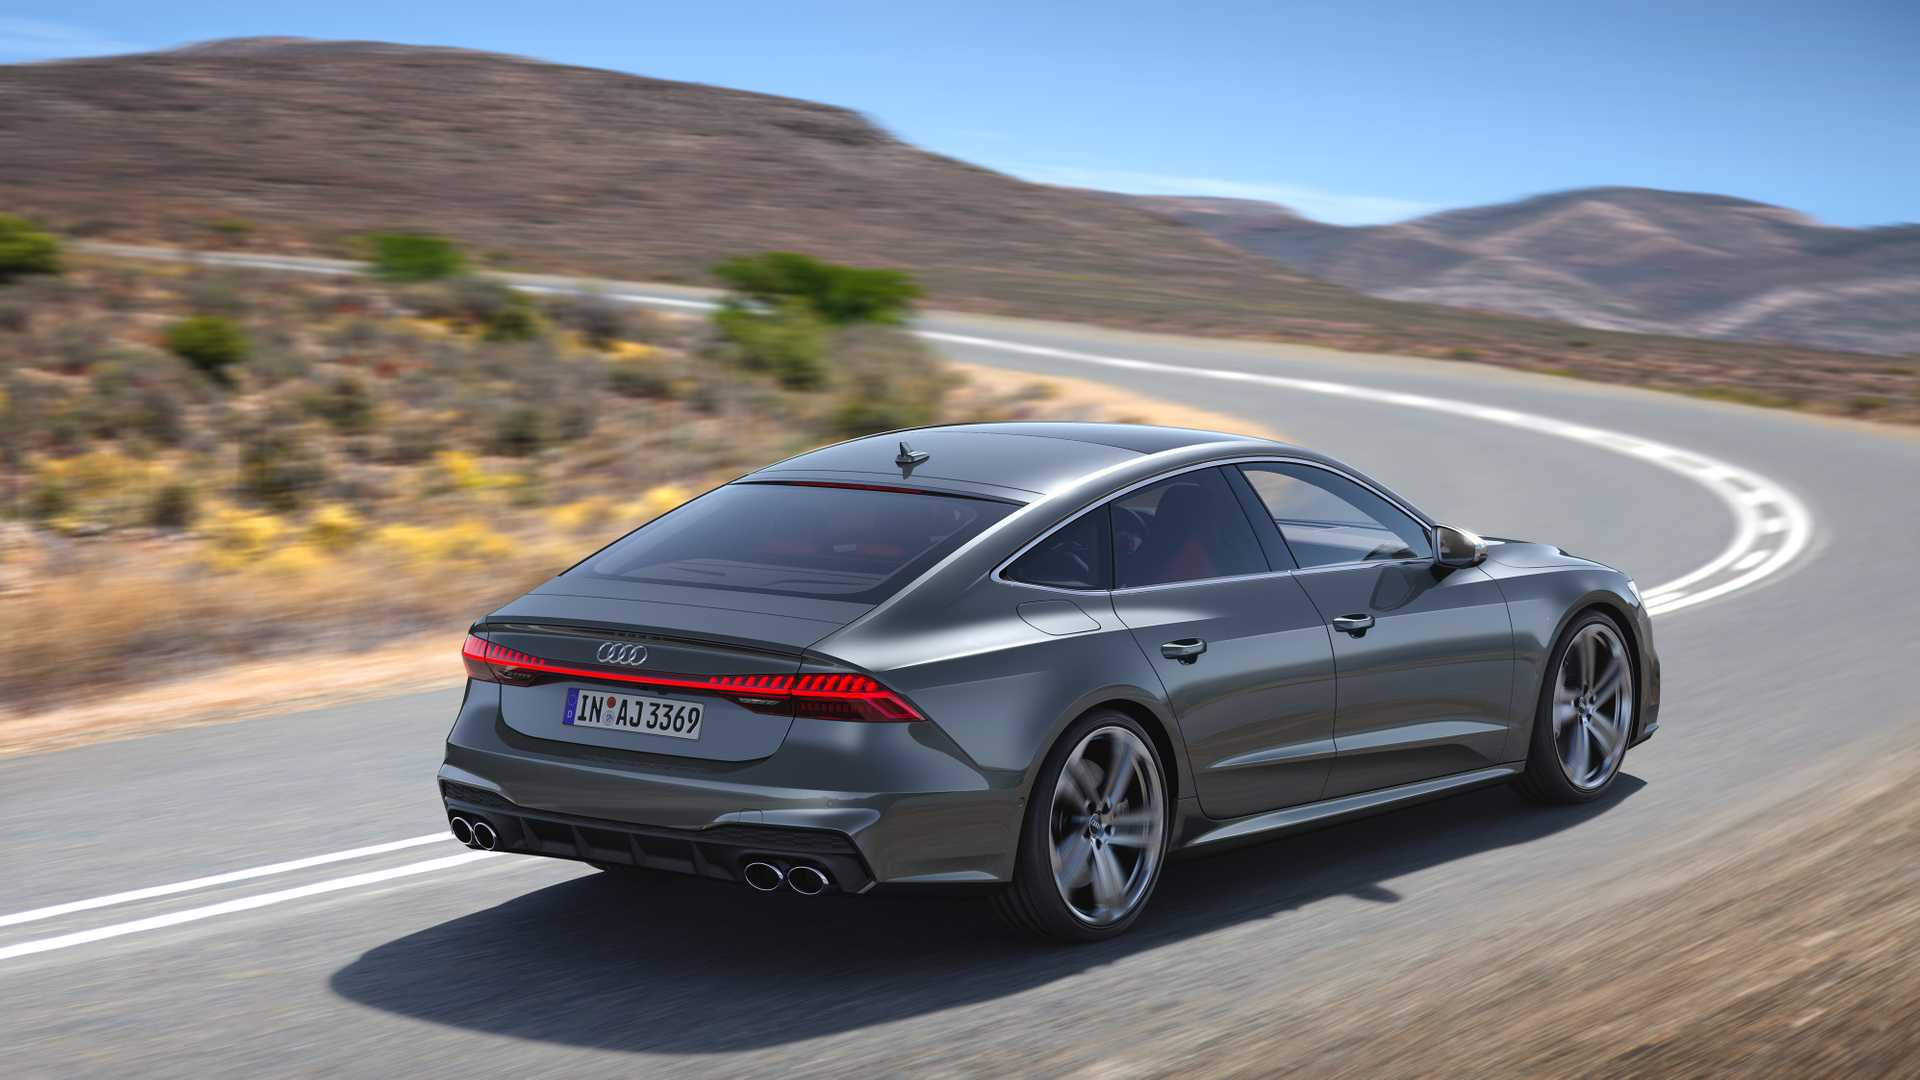 2019 Audi S7 Sportback TDI (Color: Daytona Grey) Rear Three-Quarter Wallpapers (3)